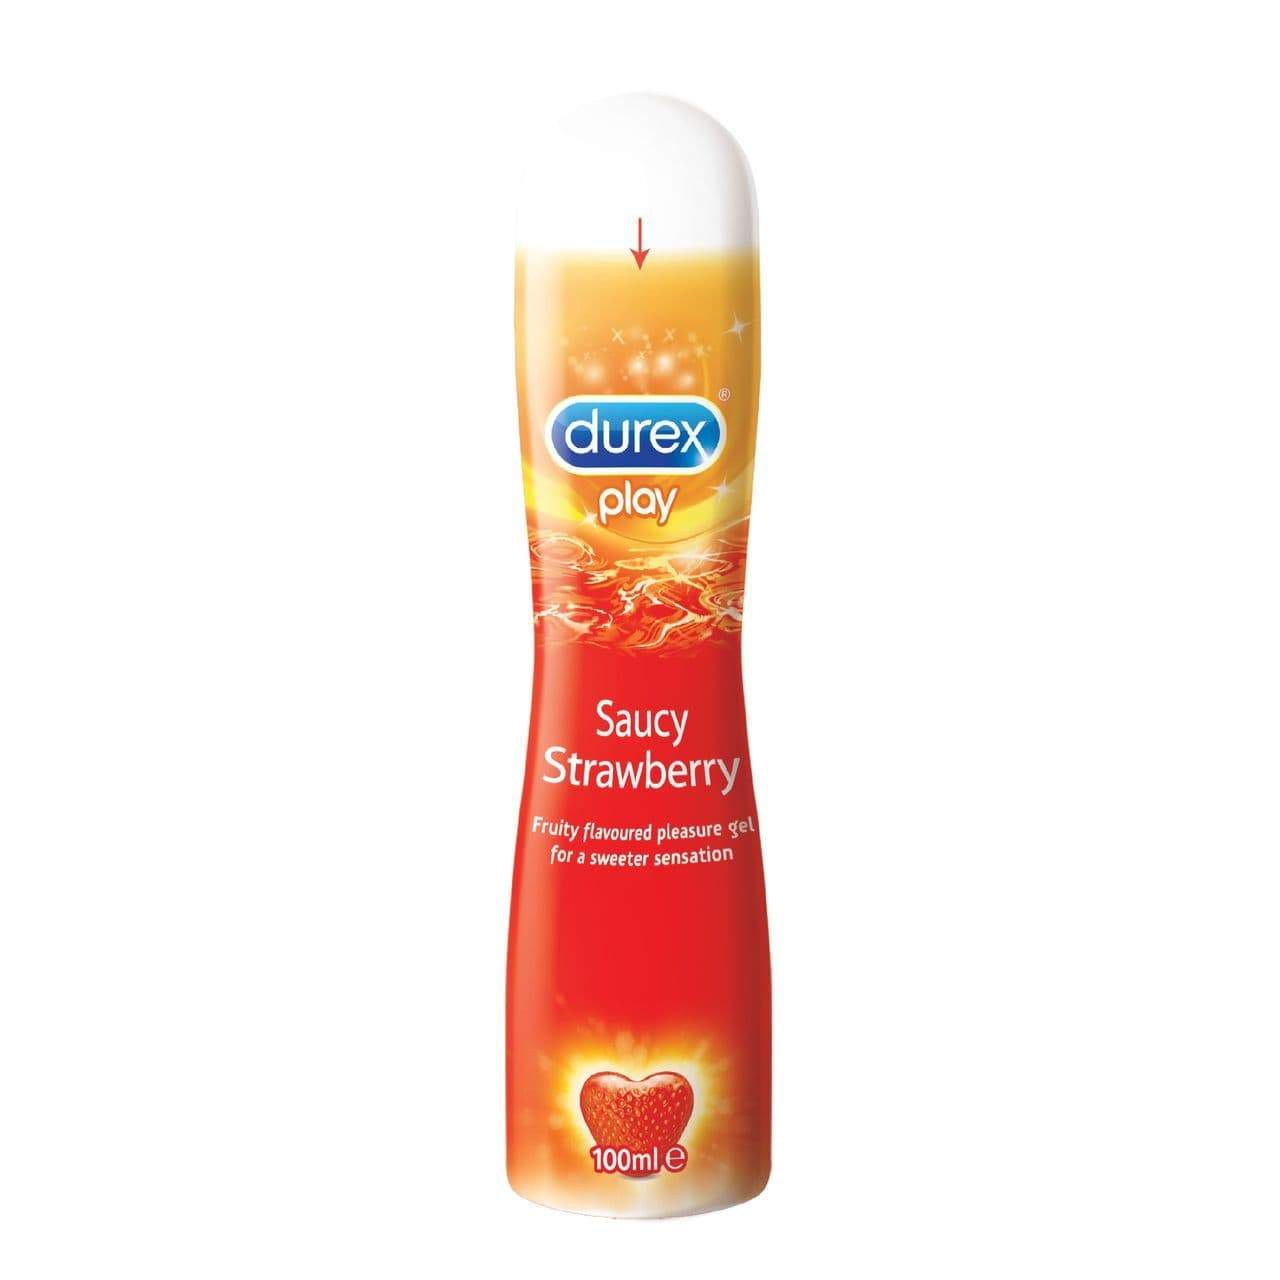 Durex - Play Saucy Strawberry Pleasure Gel 100 ml (Lube) Lube (Water Based) 5038483869178 CherryAffairs